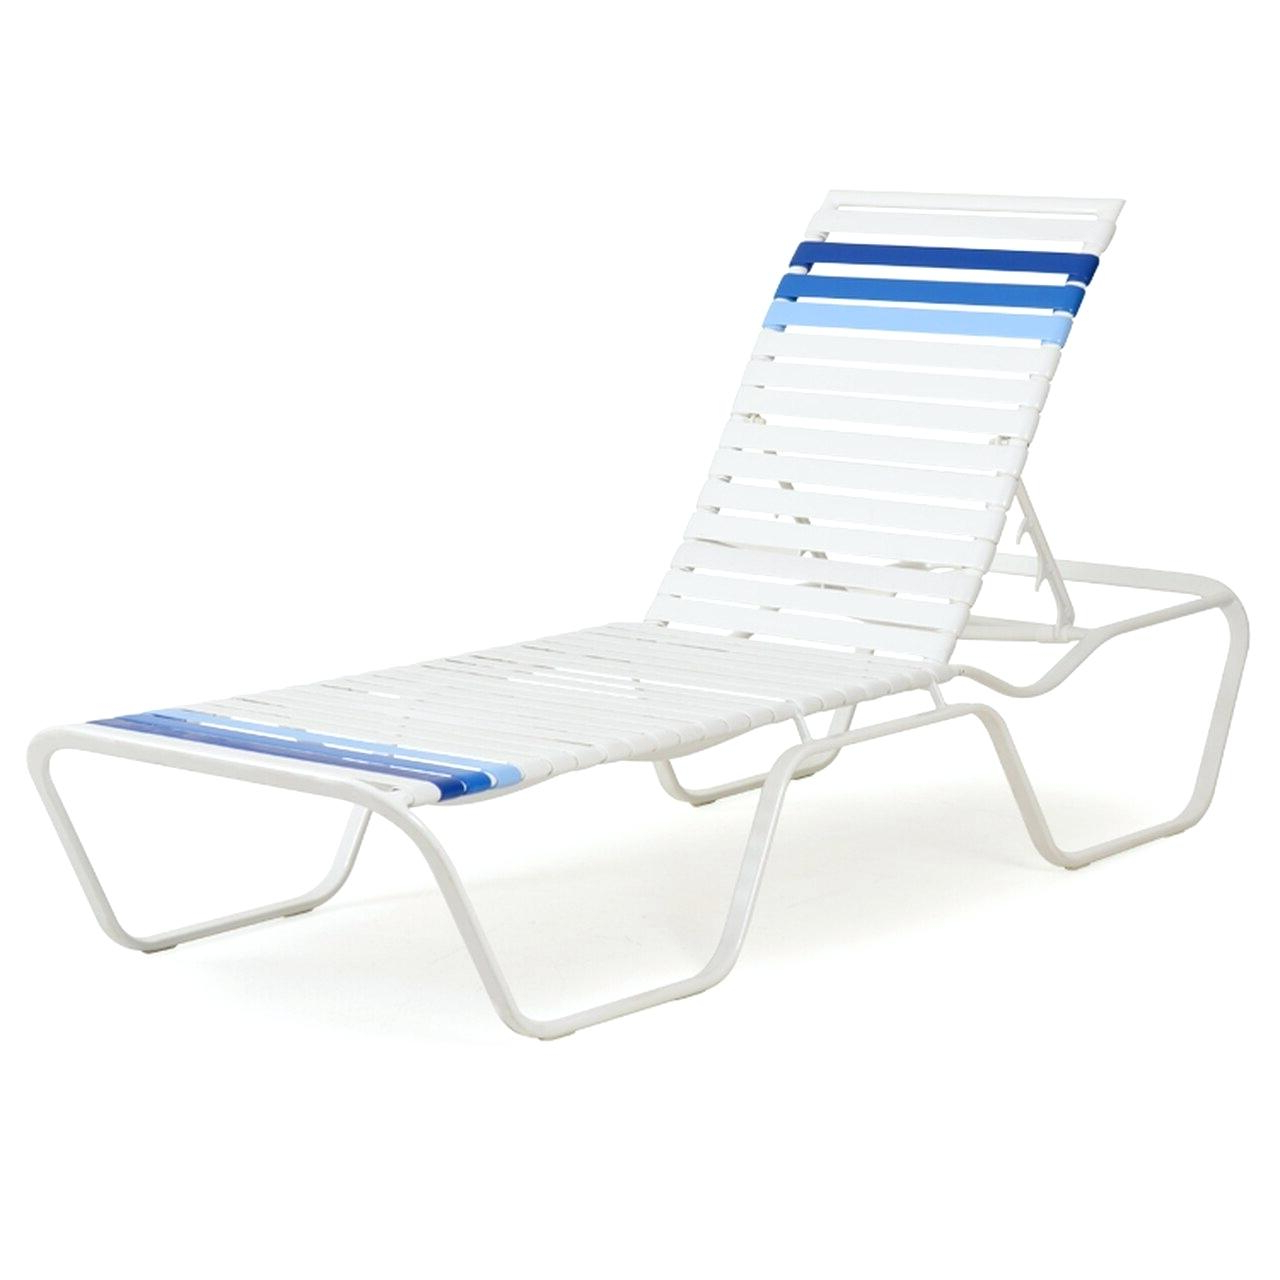 Master Outdoor Chaise Lounge Modern Contemporary For Sale At With Widely Used Envisage Chaise Outdoor Patio Wicker Rattan Lounge Chairs (View 25 of 25)